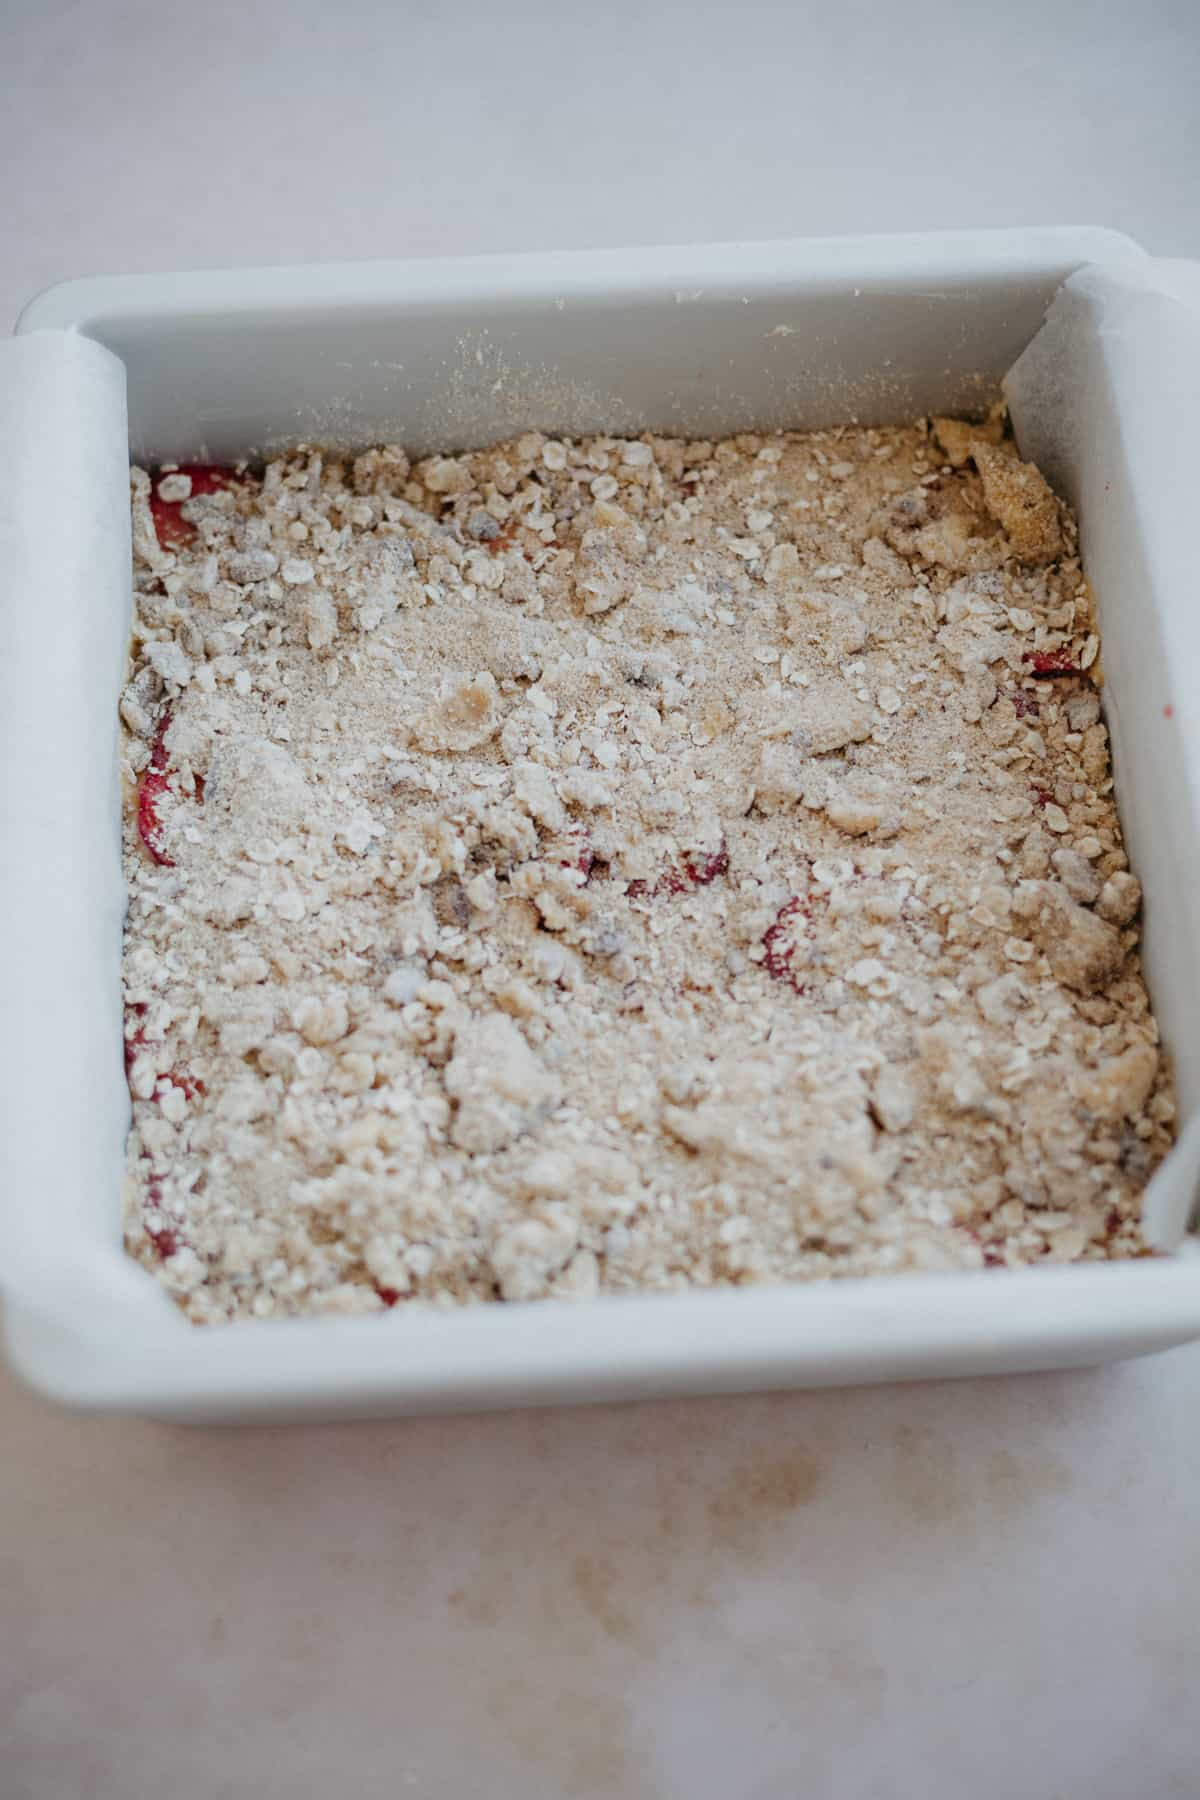 A cake pan filled with cake batter then covered in an oat crumble topping